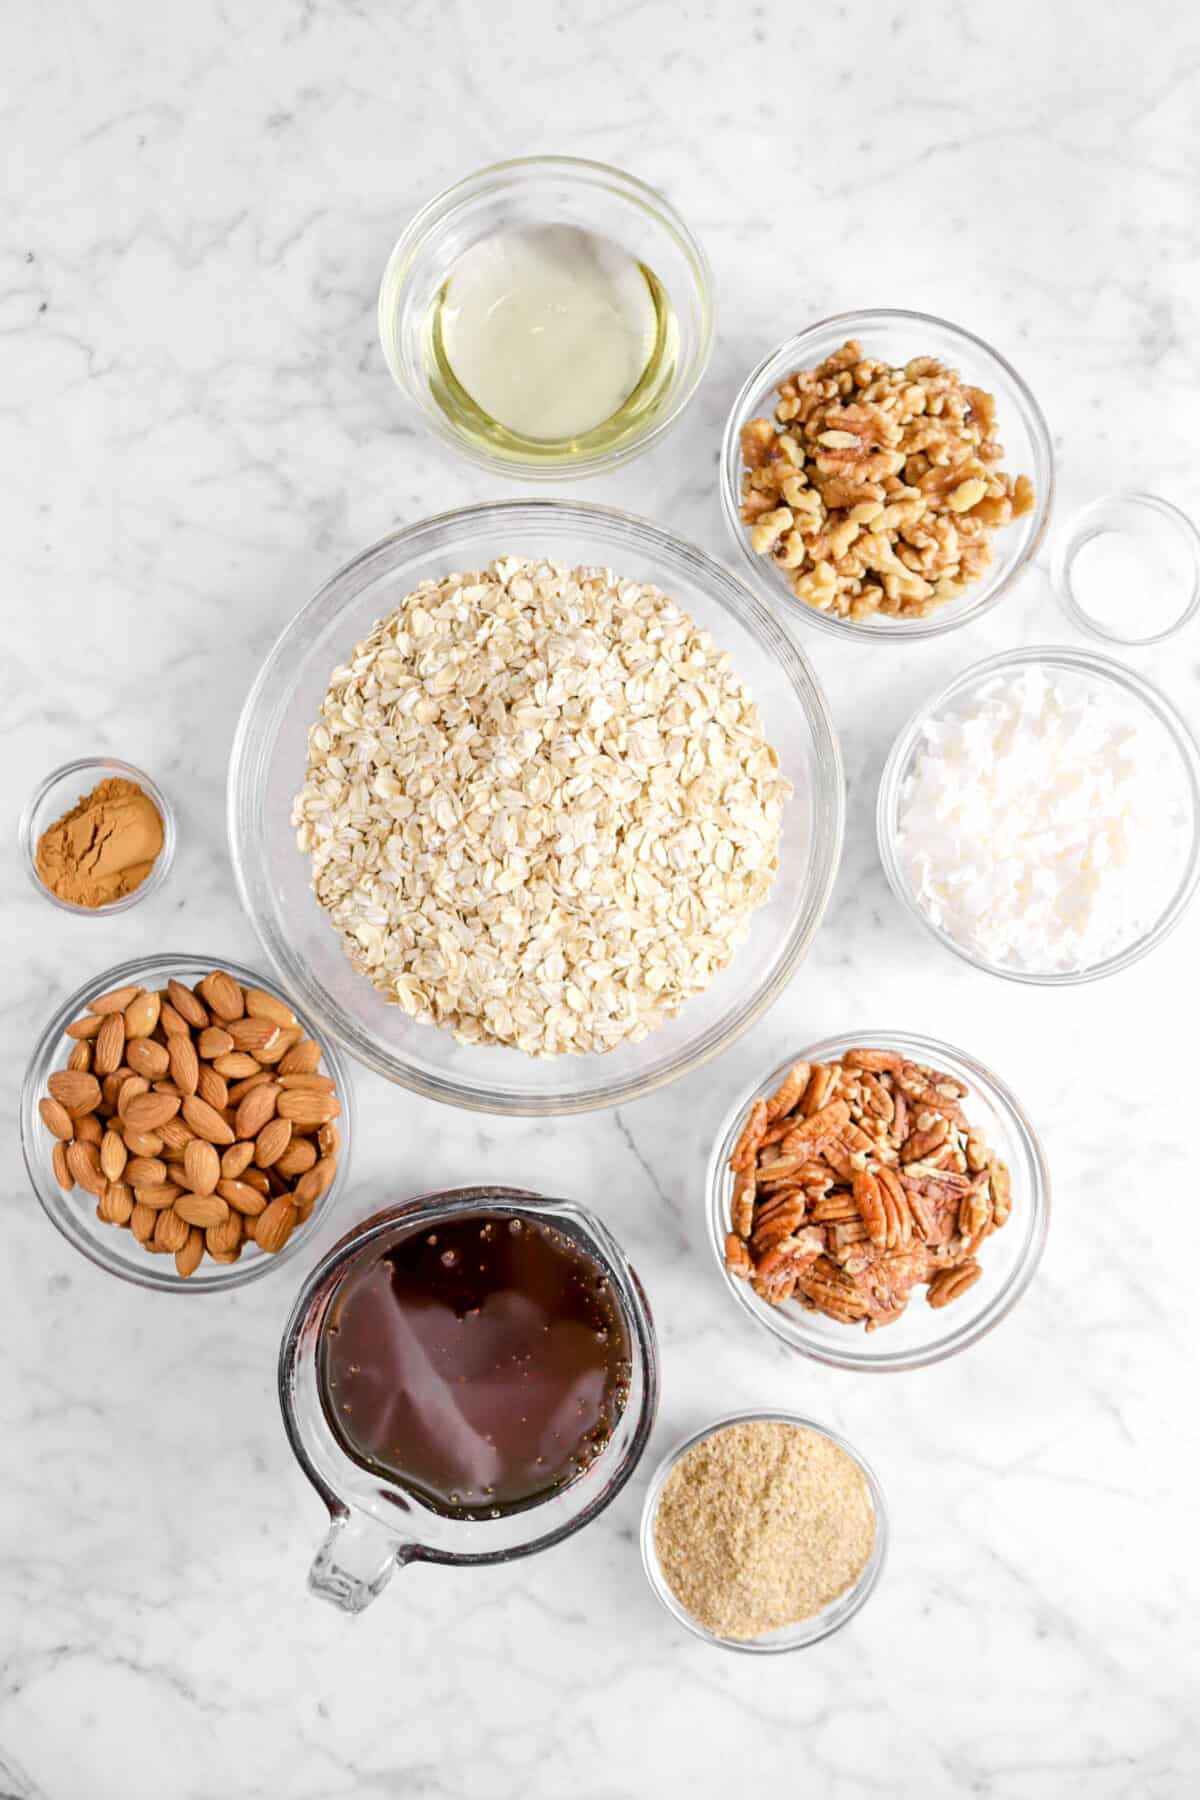 vegetable oil, walnut, salt, coconut flakes, pecans, oats, wheat germ, honey, almonds, and cinnamon in glass bowls